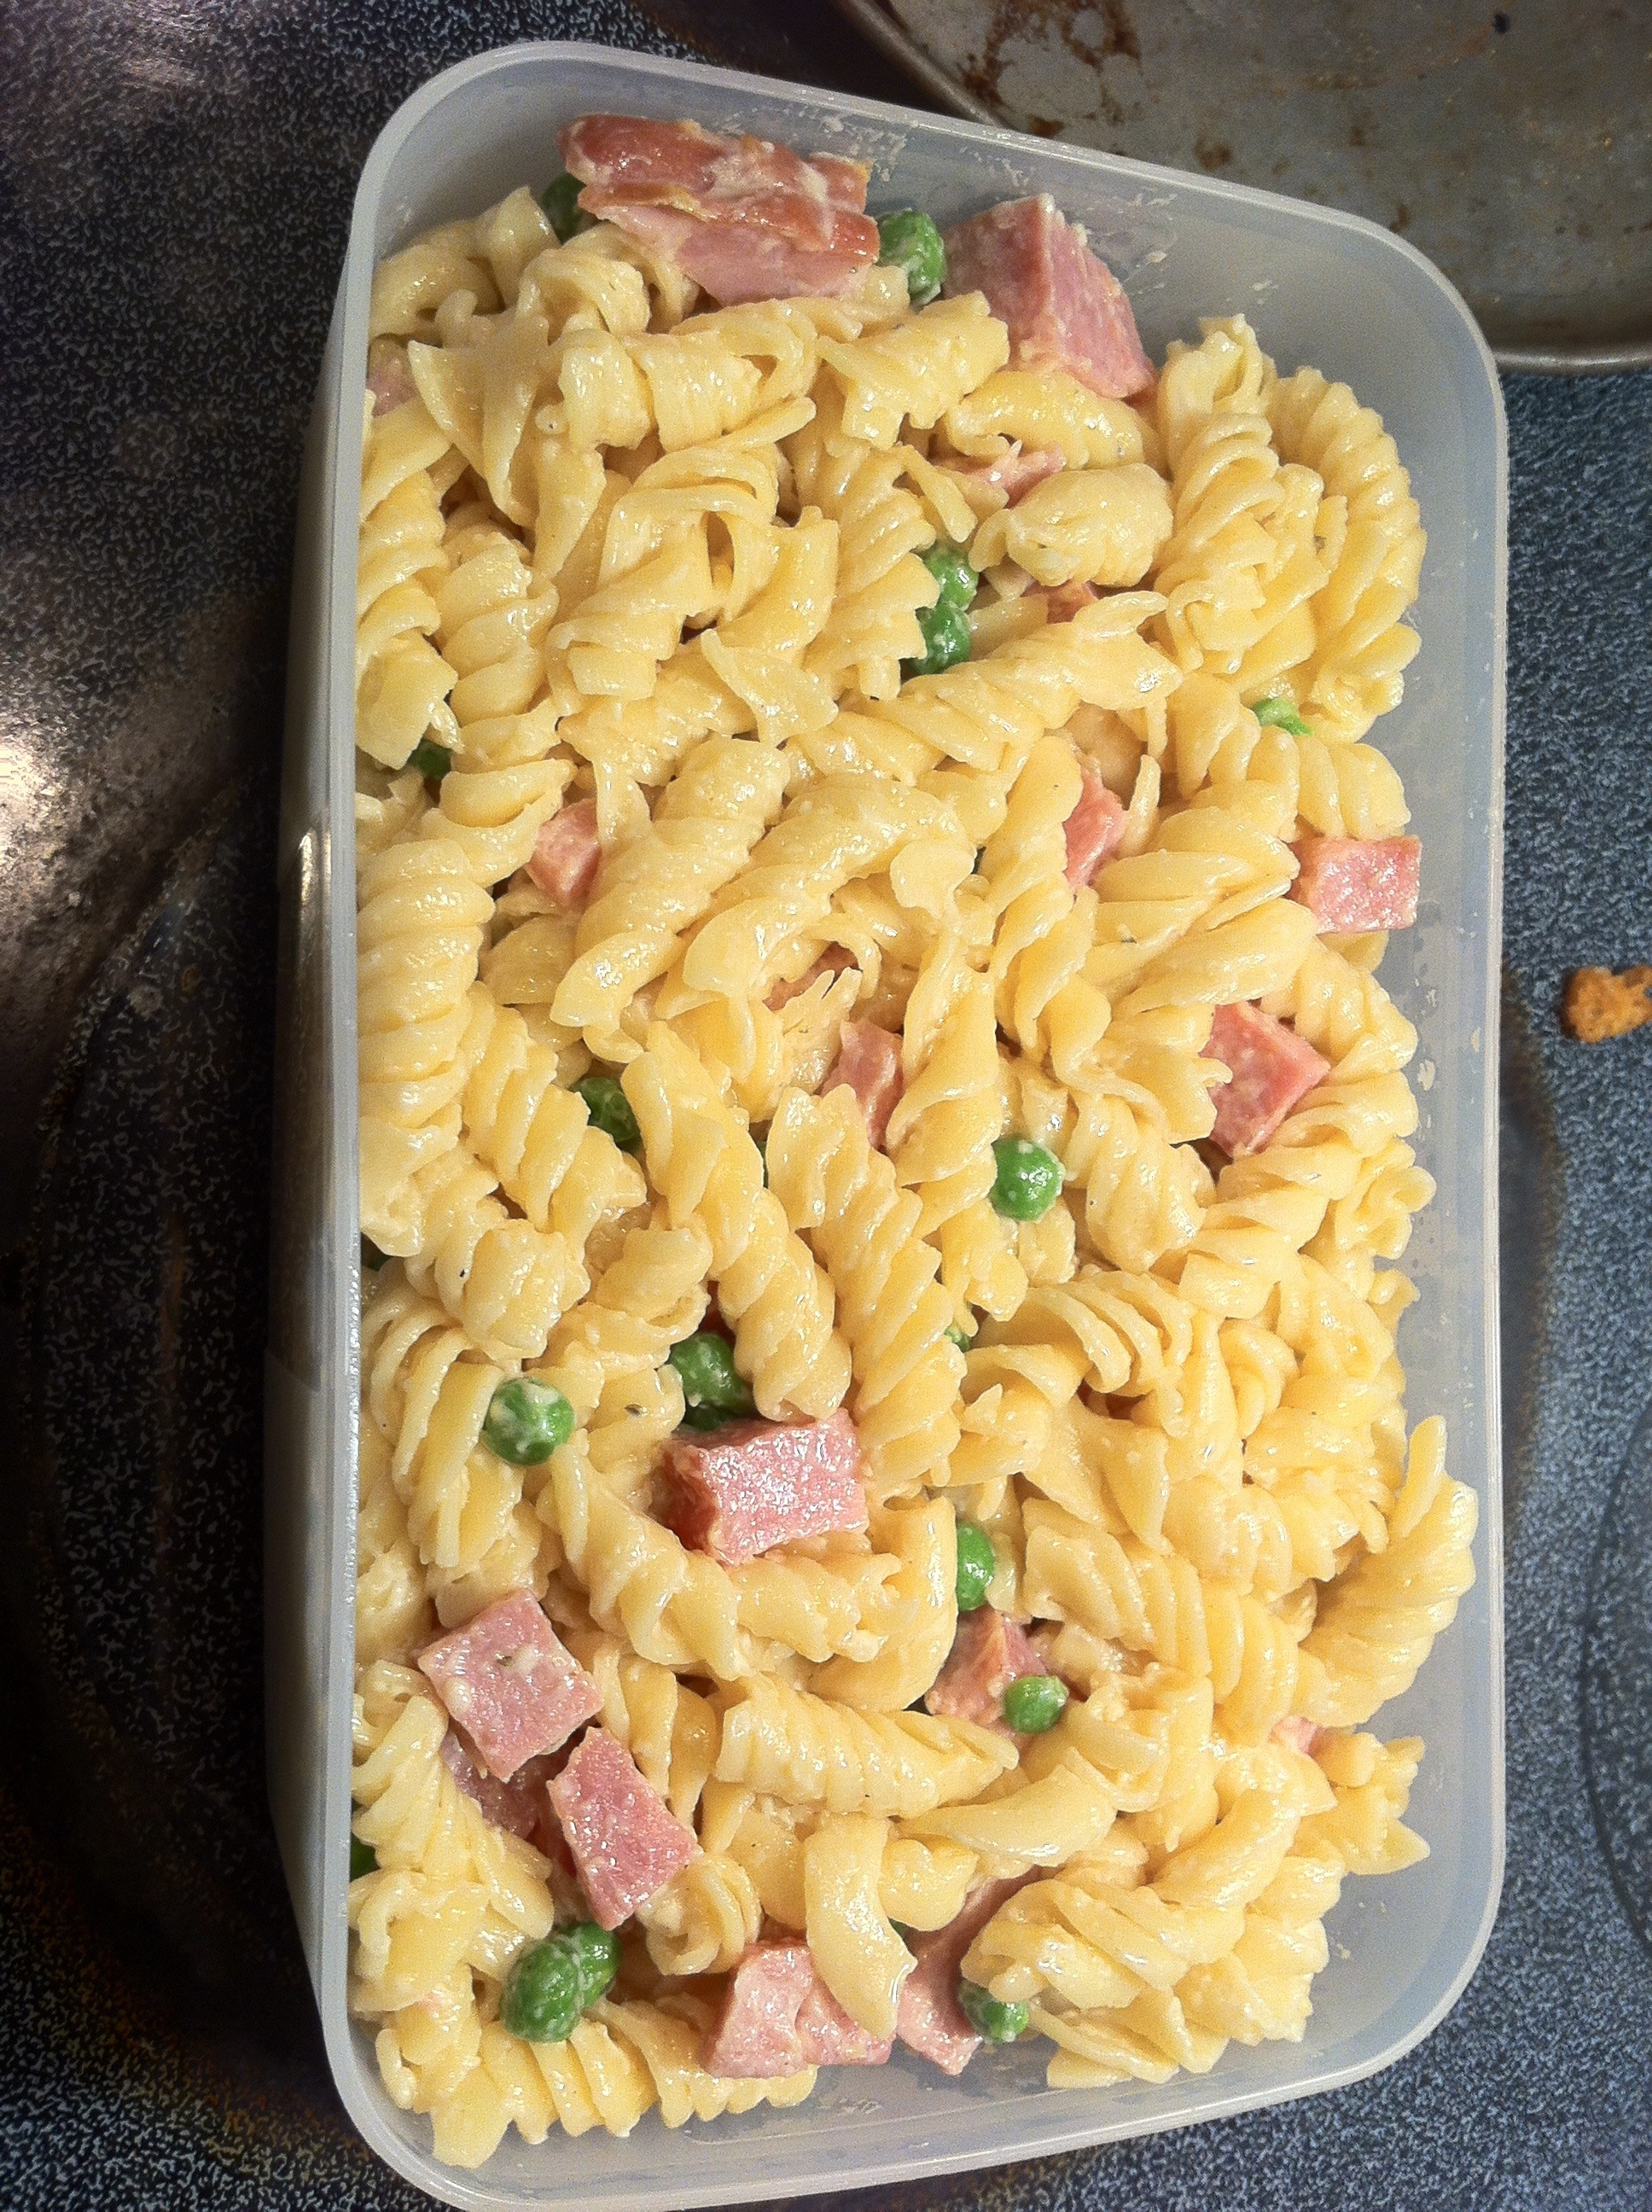 In the Kitchen – Ruby Tuesday's Pasta Salad